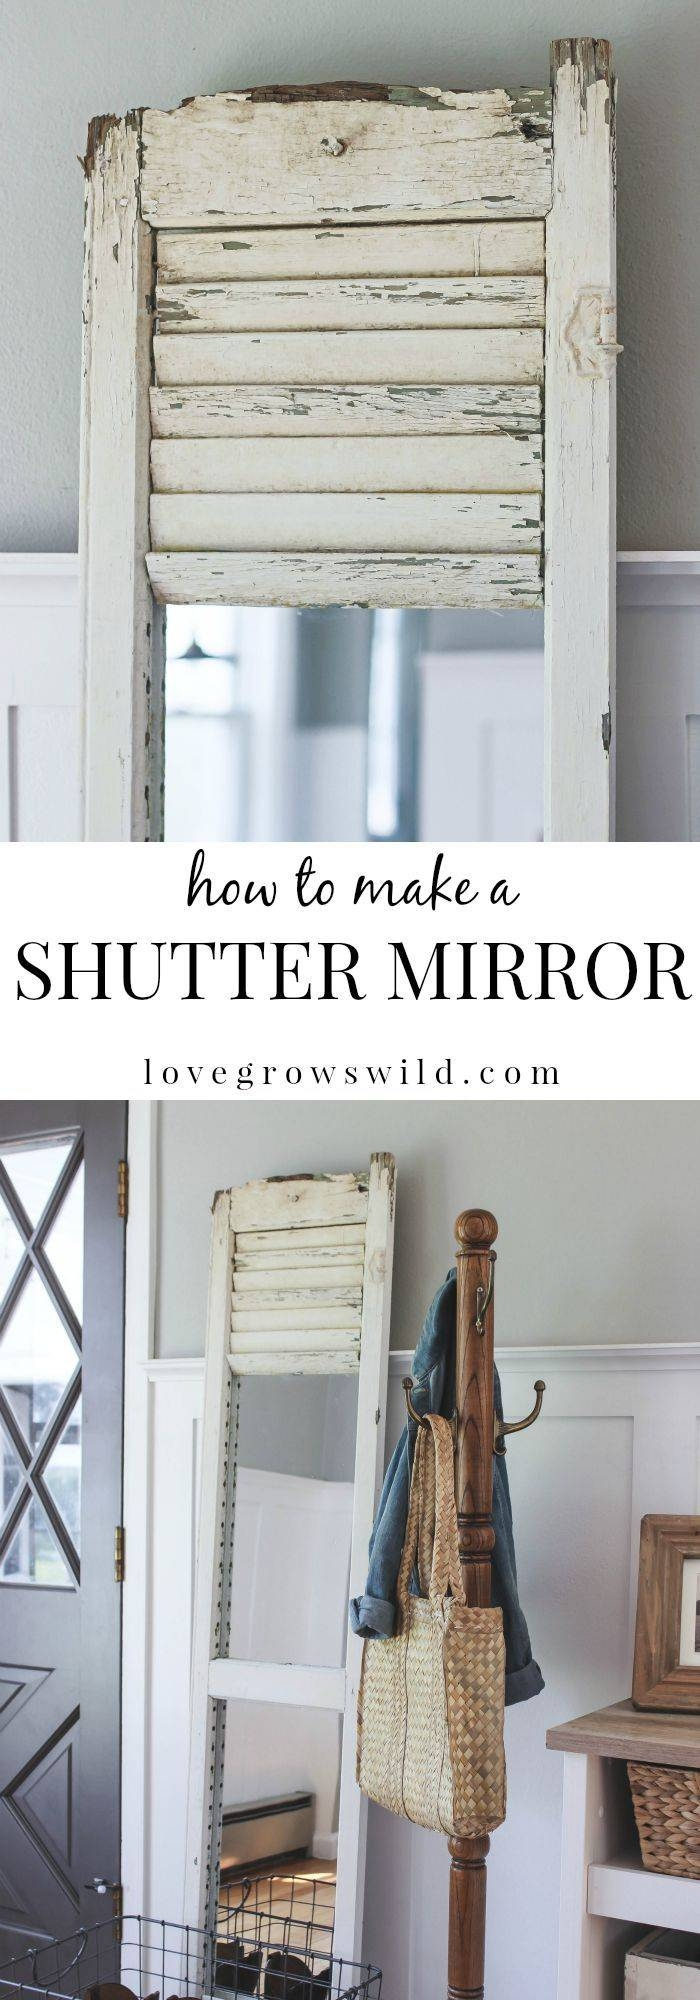 79 Best Diys And Ideas With Shutters Images On Pinterest regarding Wall Mirrors With Shutters (Image 1 of 25)